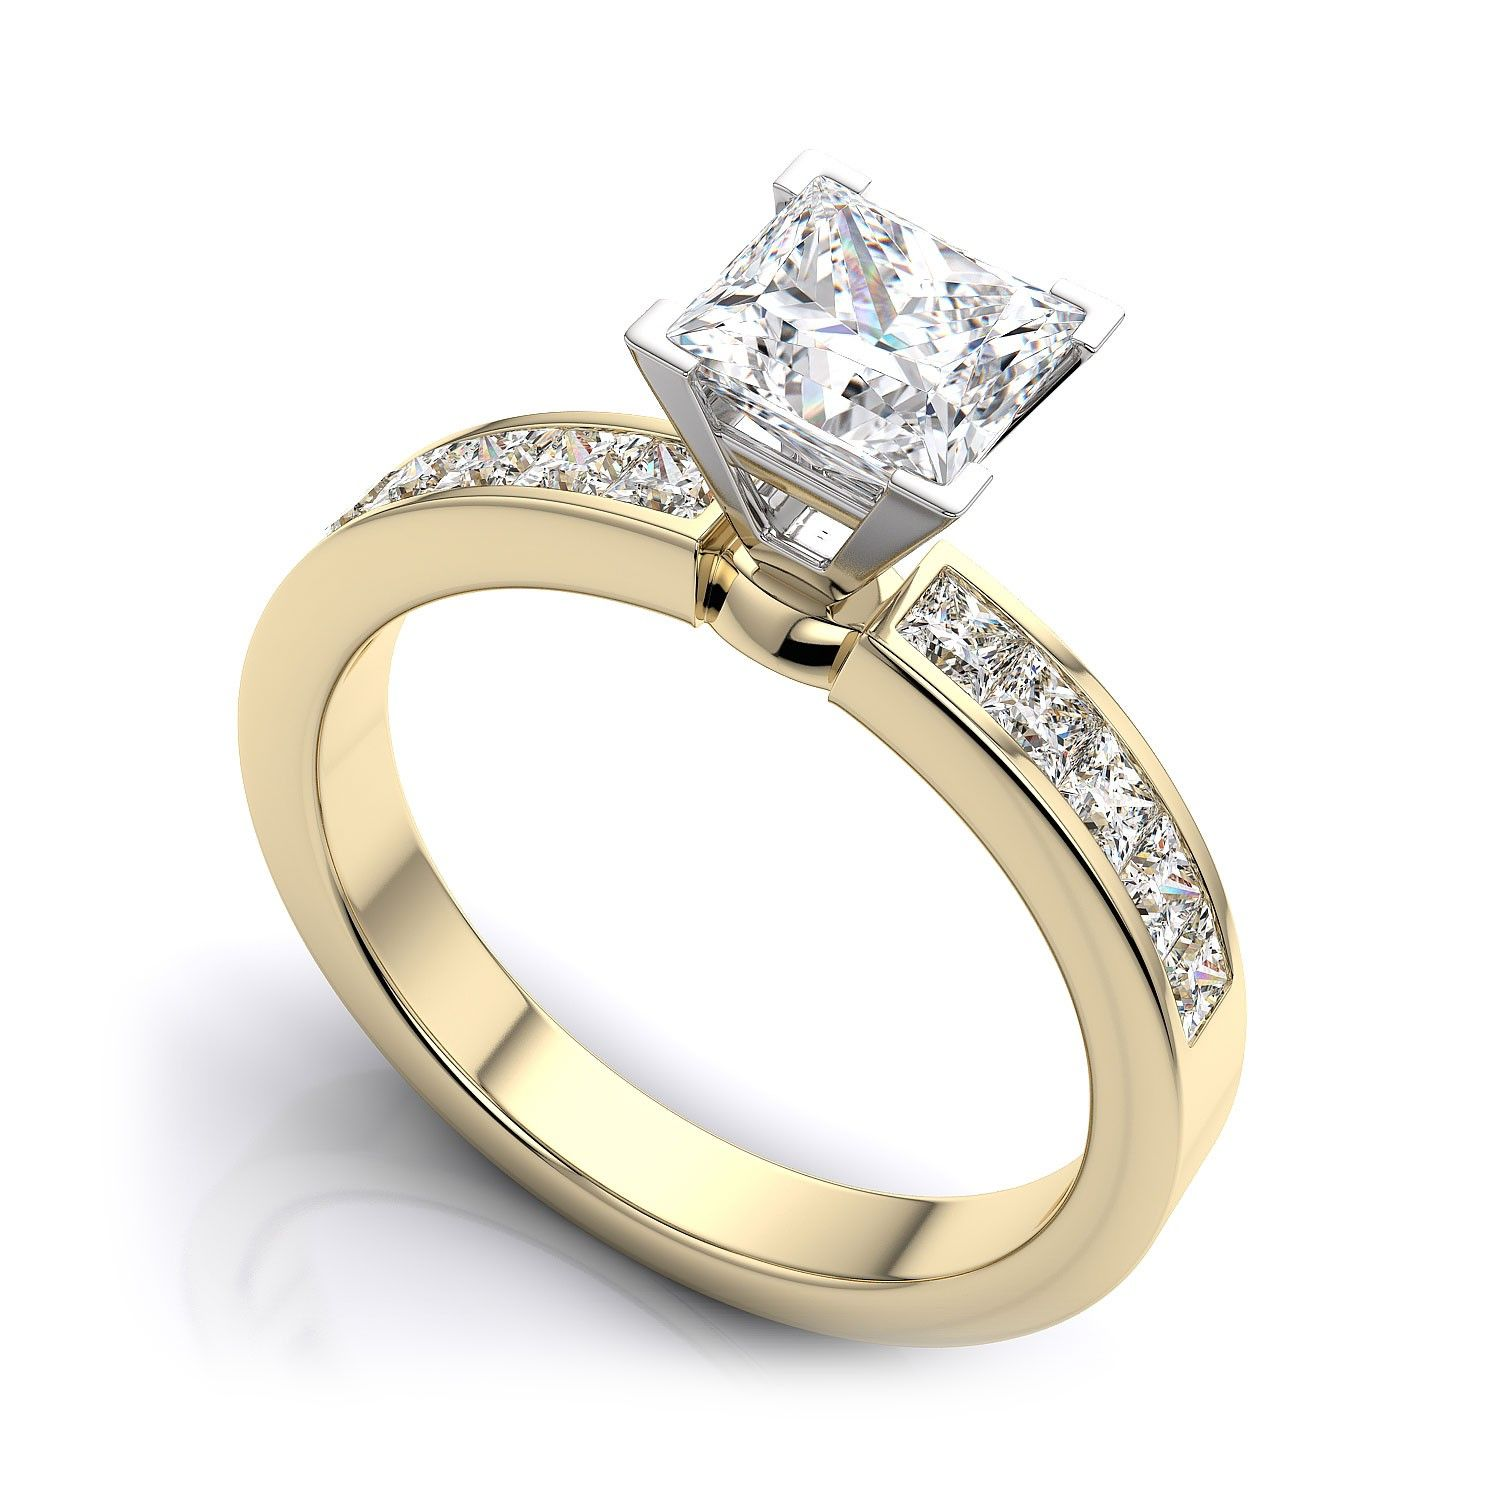 band ct gold rings stone product shop anniversary wedding womens rakuten real ring yellow diamond